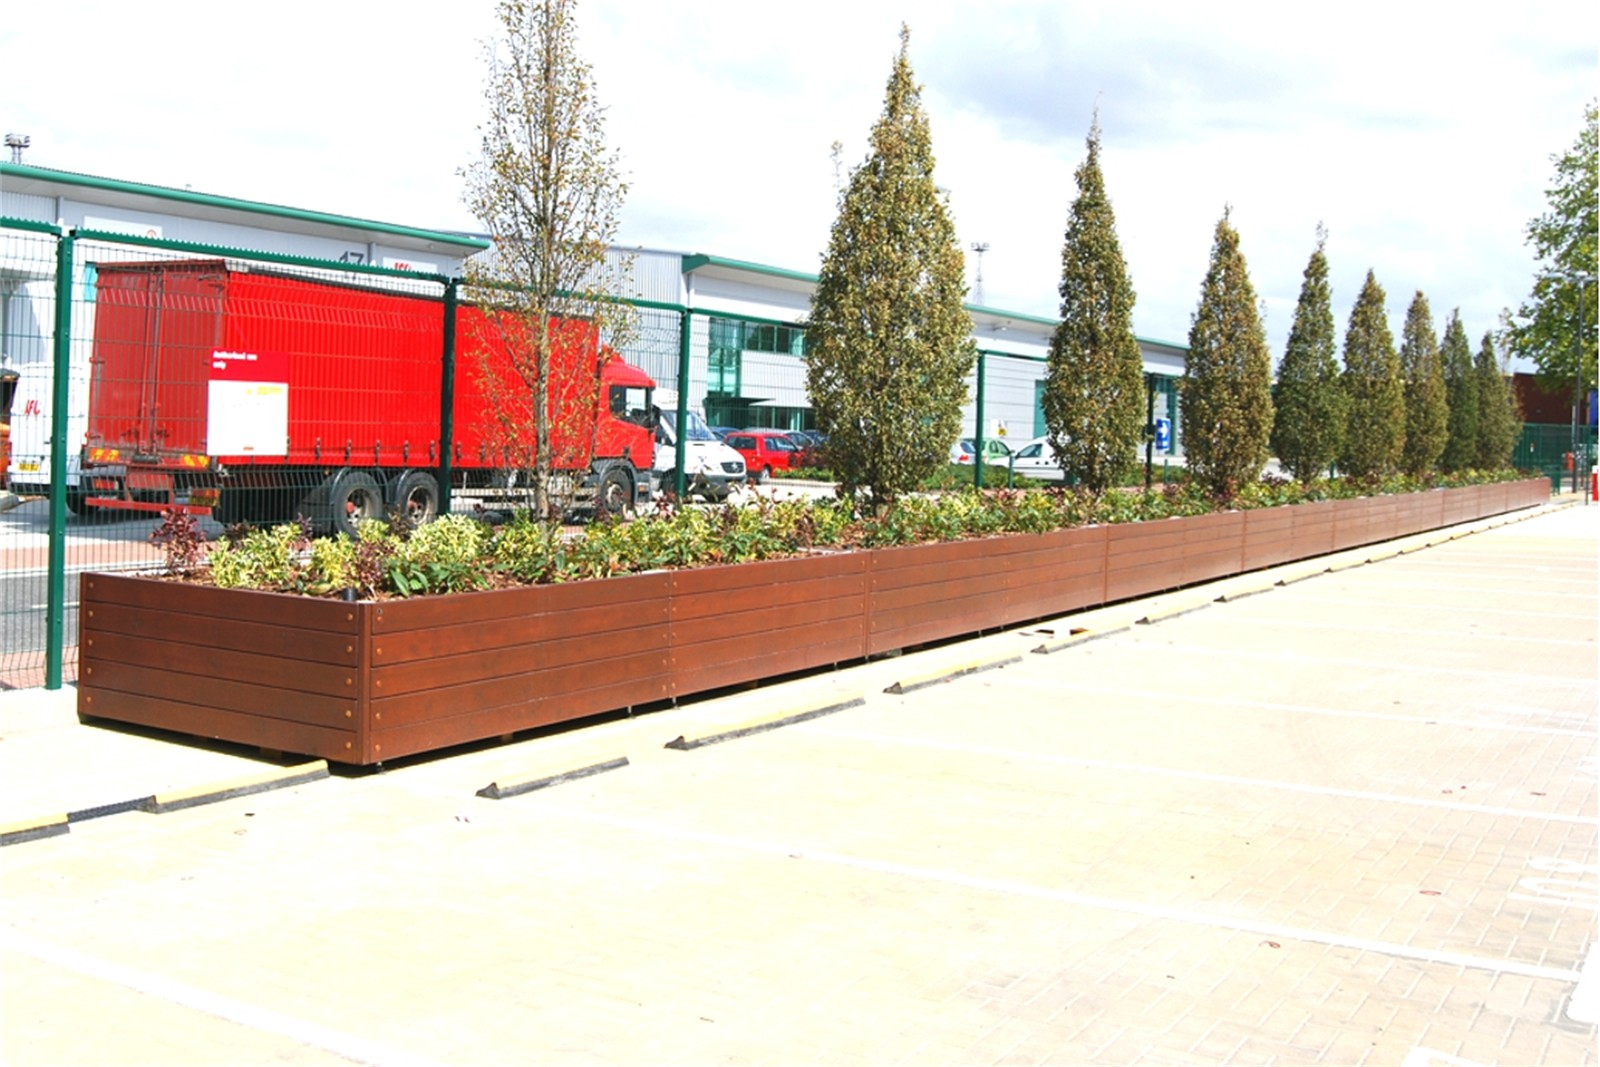 41pgr04 - Large 50m long Grenadier planter